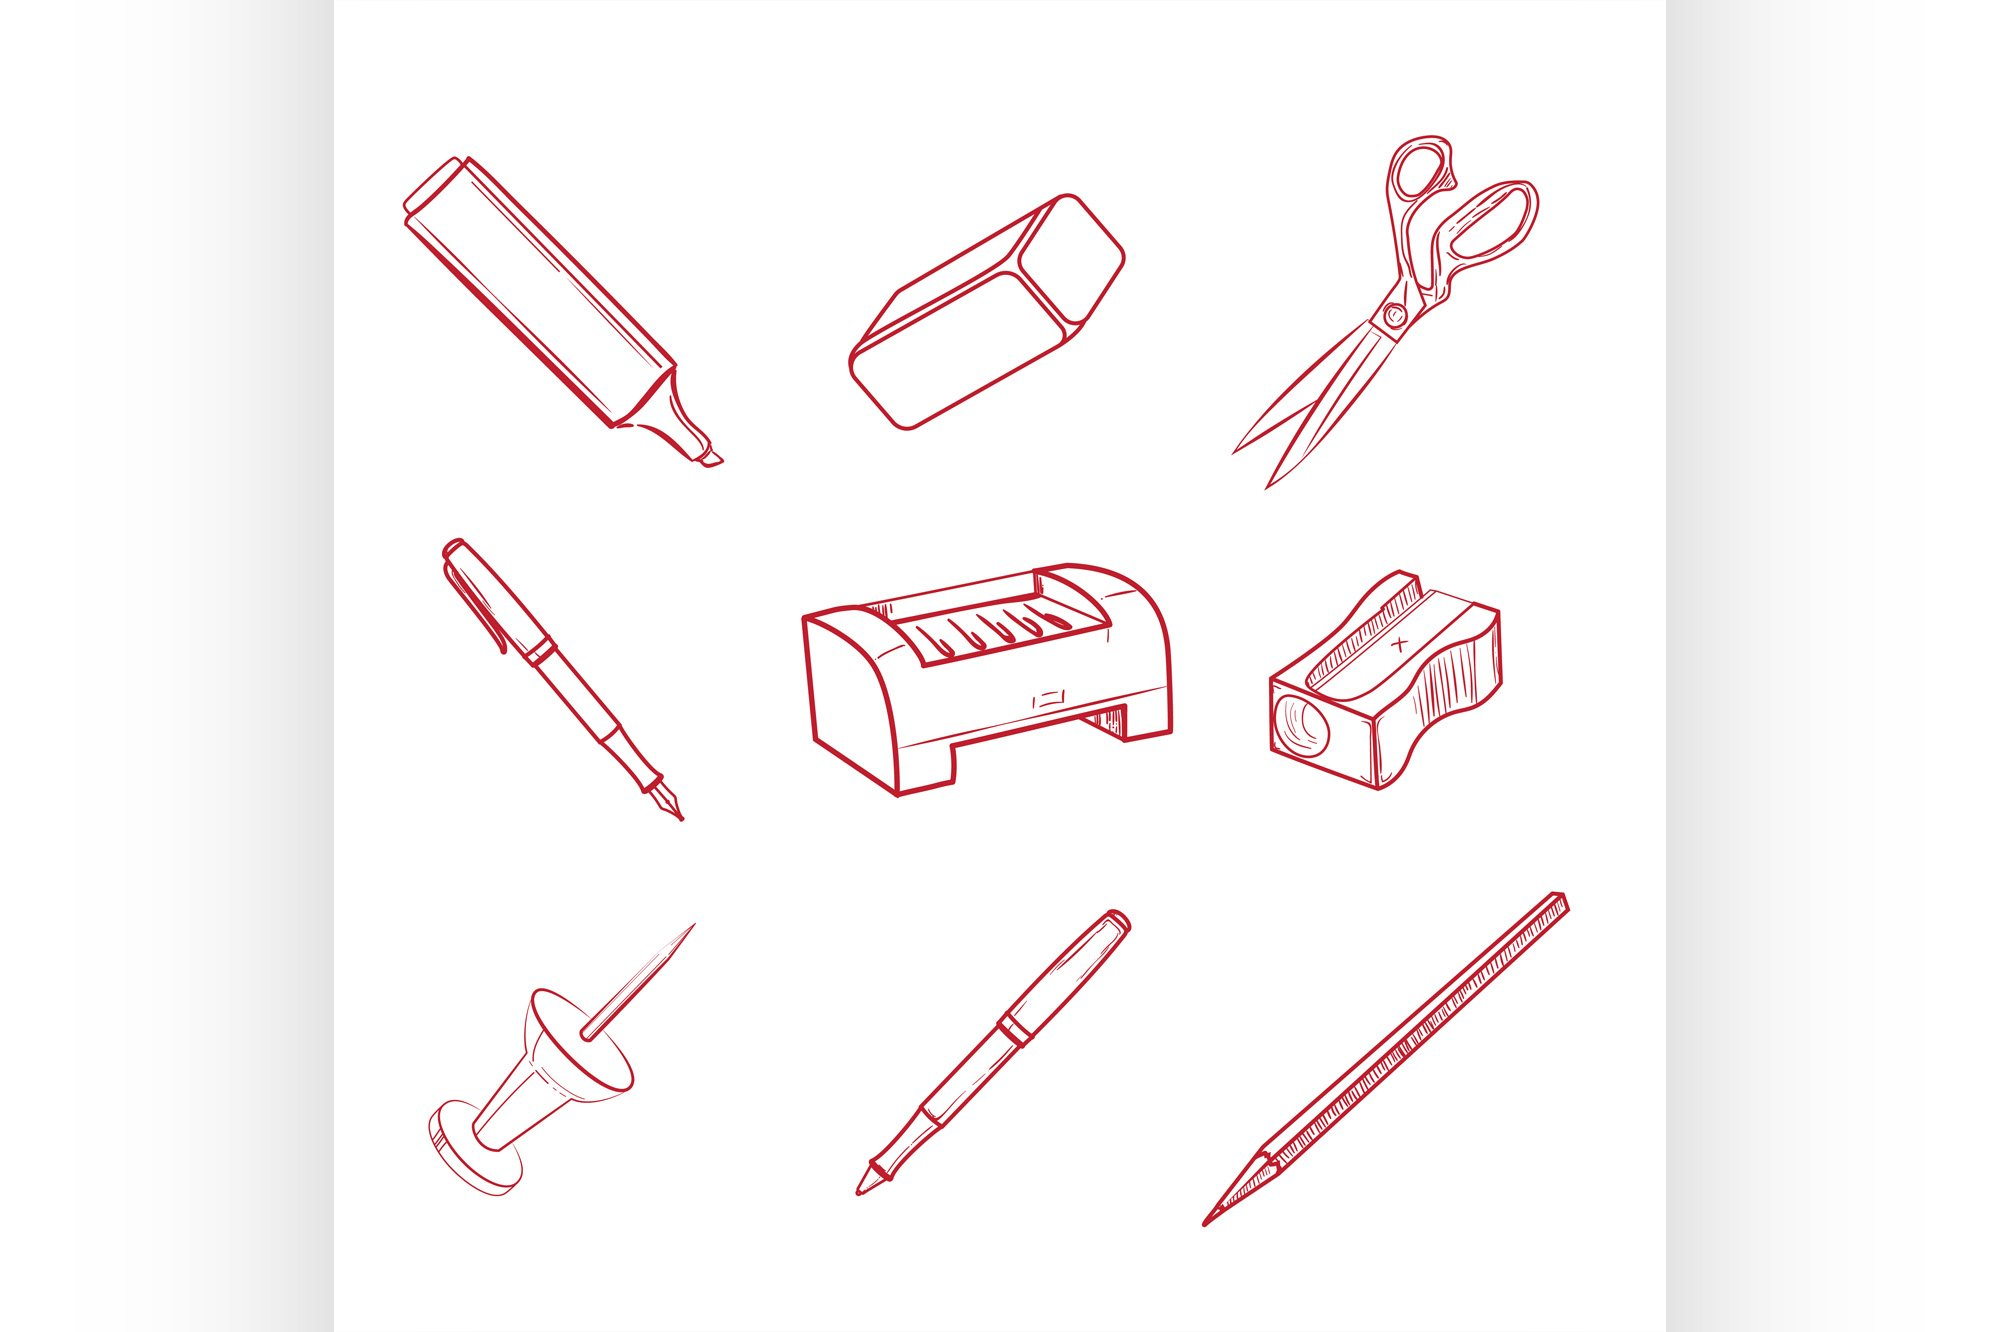 Hand-drawn Office equipment icons example image 1